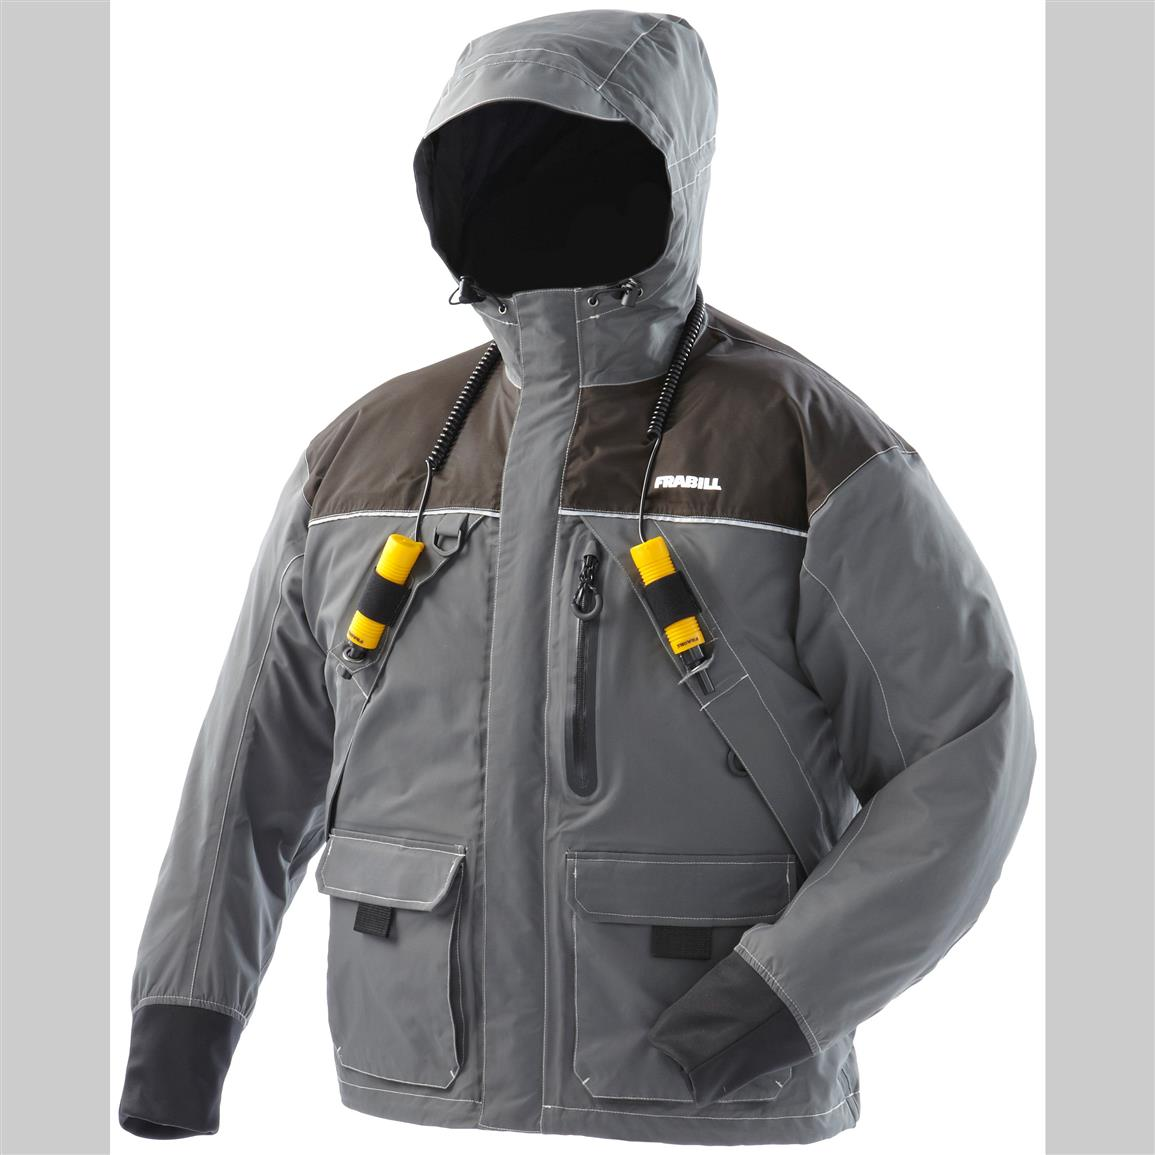 Frabill i2 waterproof jacket 622866 ice fishing for Ice fishing clothing